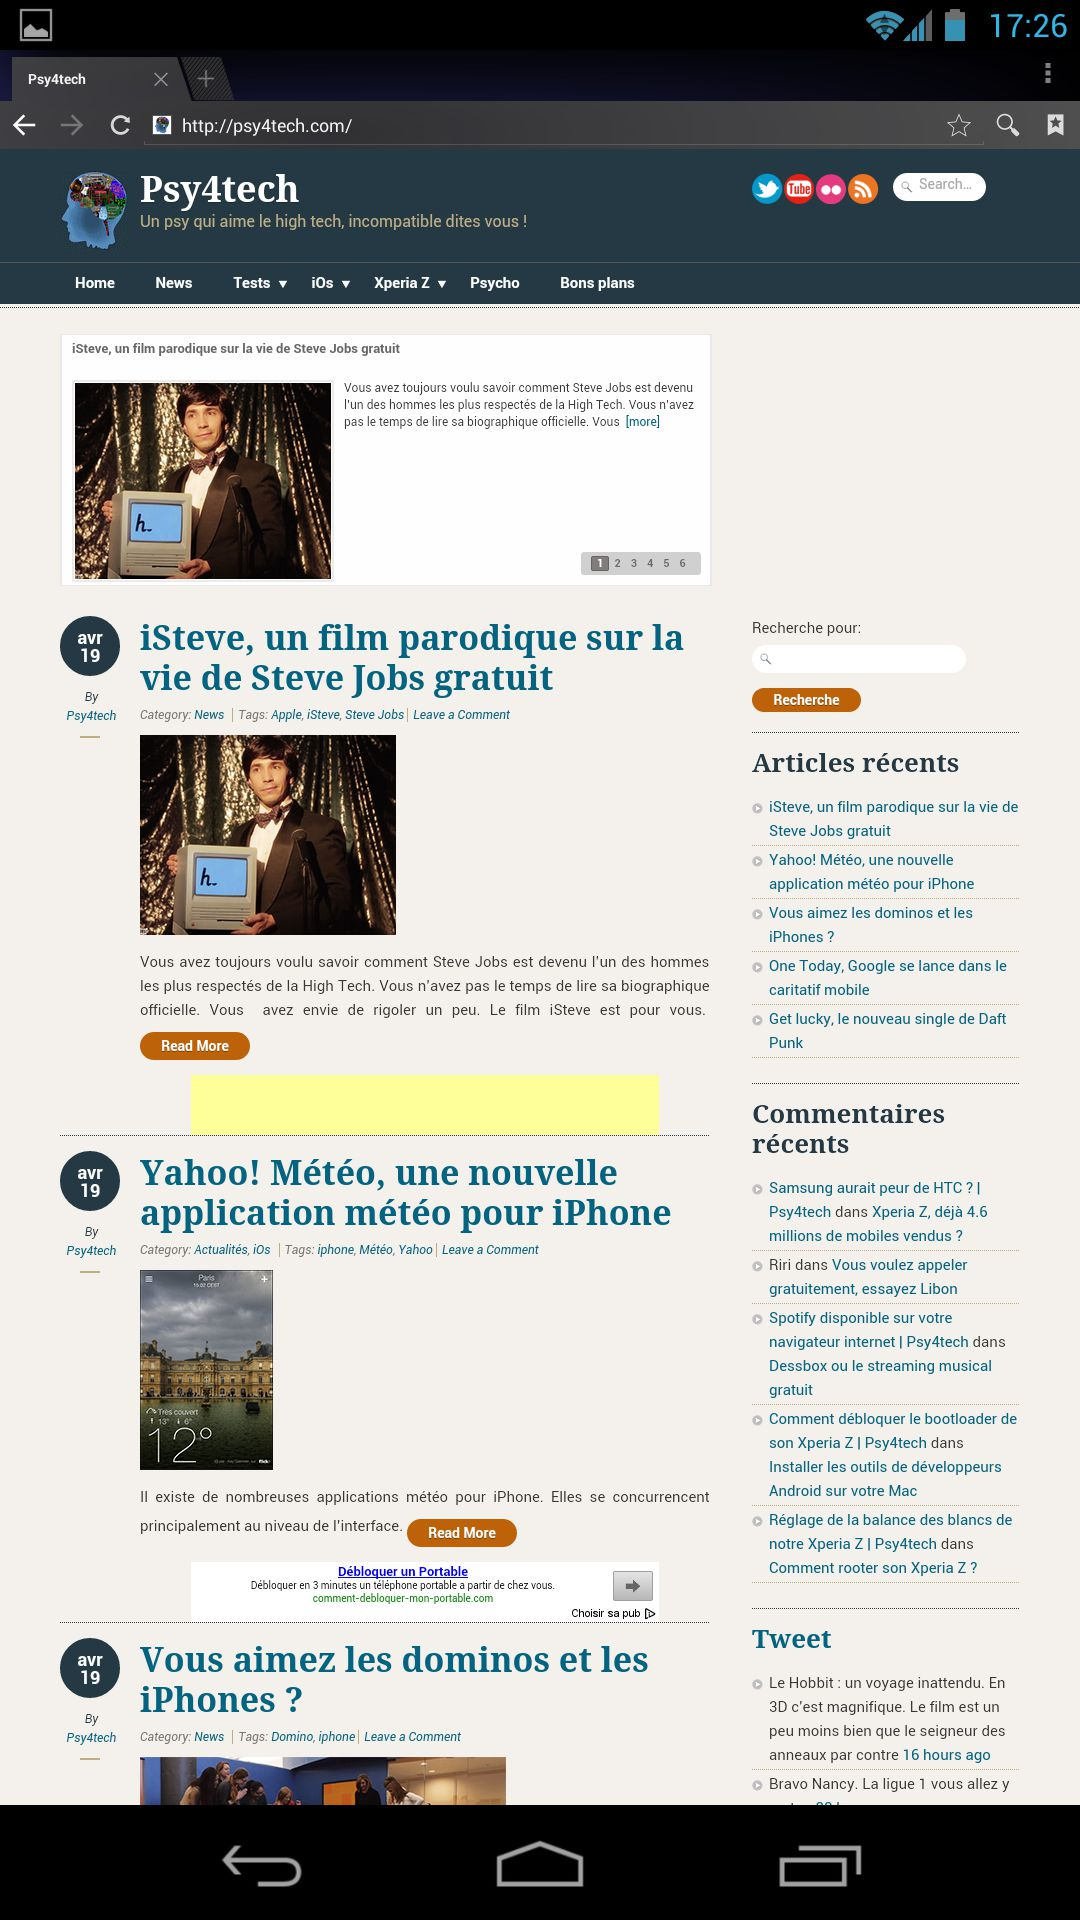 Screenshot_2013-04-22-17-26-05